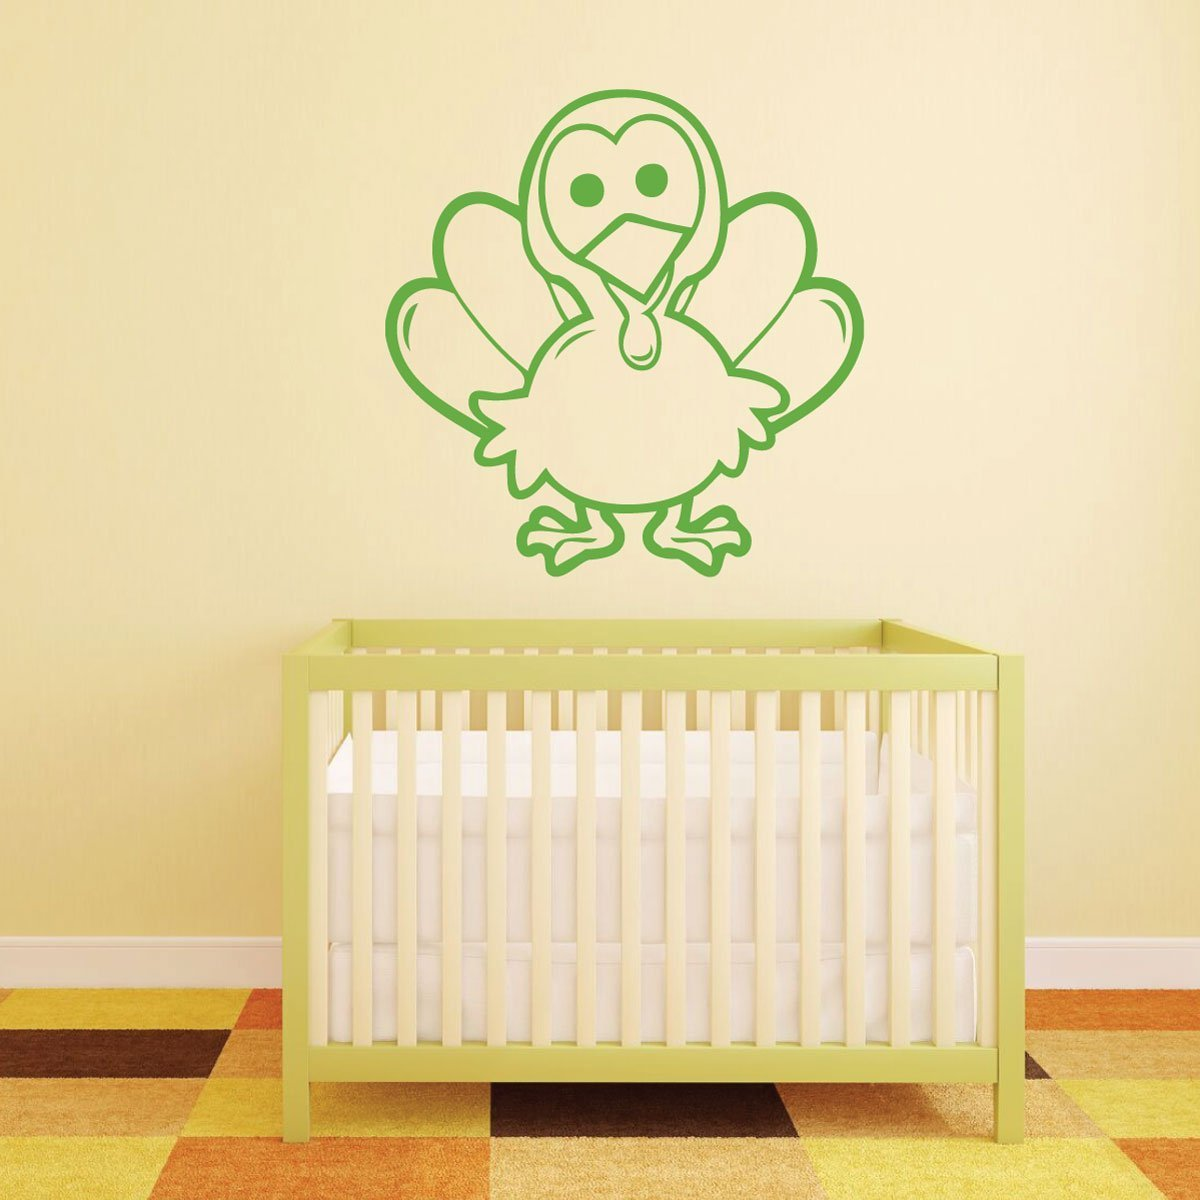 Thanksgiving Decor - Little Cute Turkey - Turkey Wall Decals for Thanksgiving Decorations